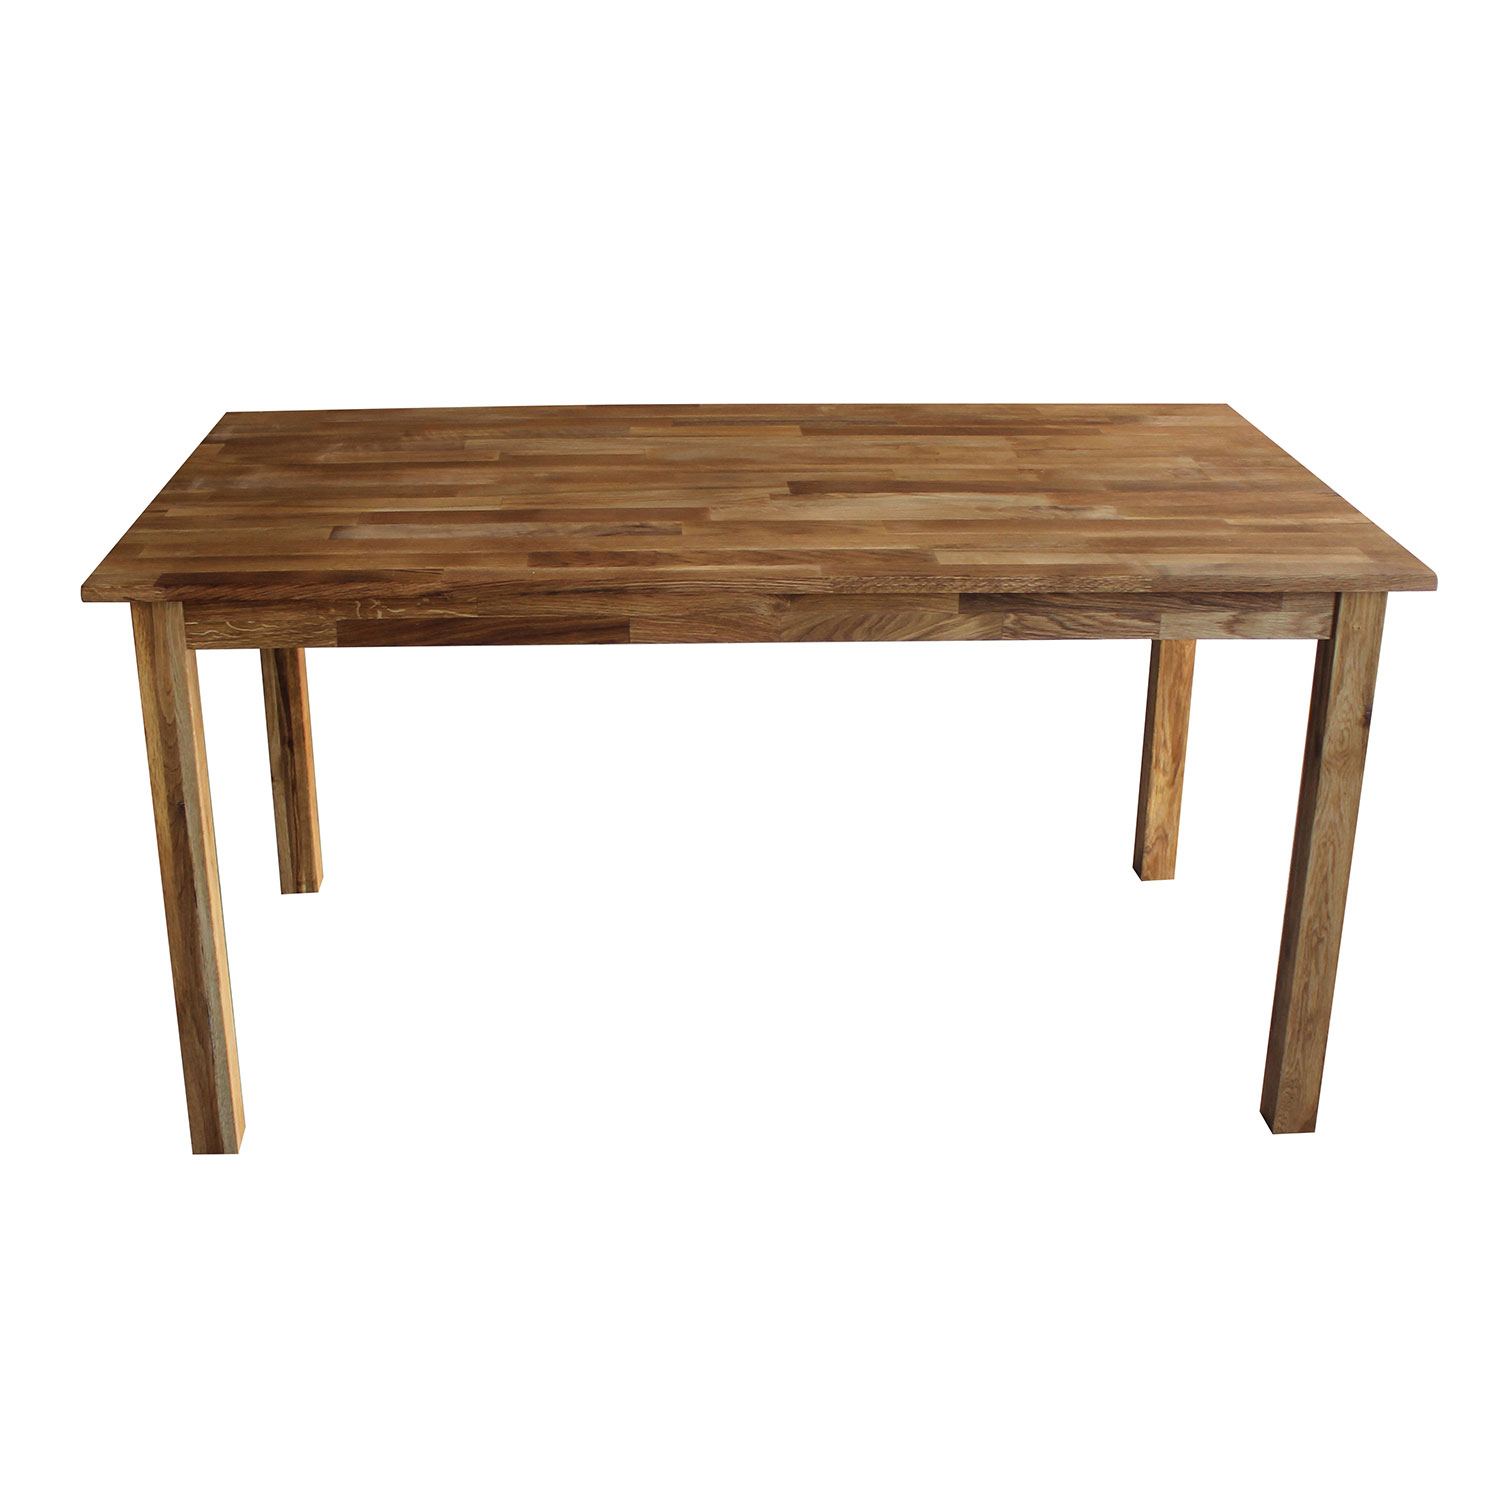 charles bentley solid oak 6 8 seater wooden dining table rectangular 150cm lngth